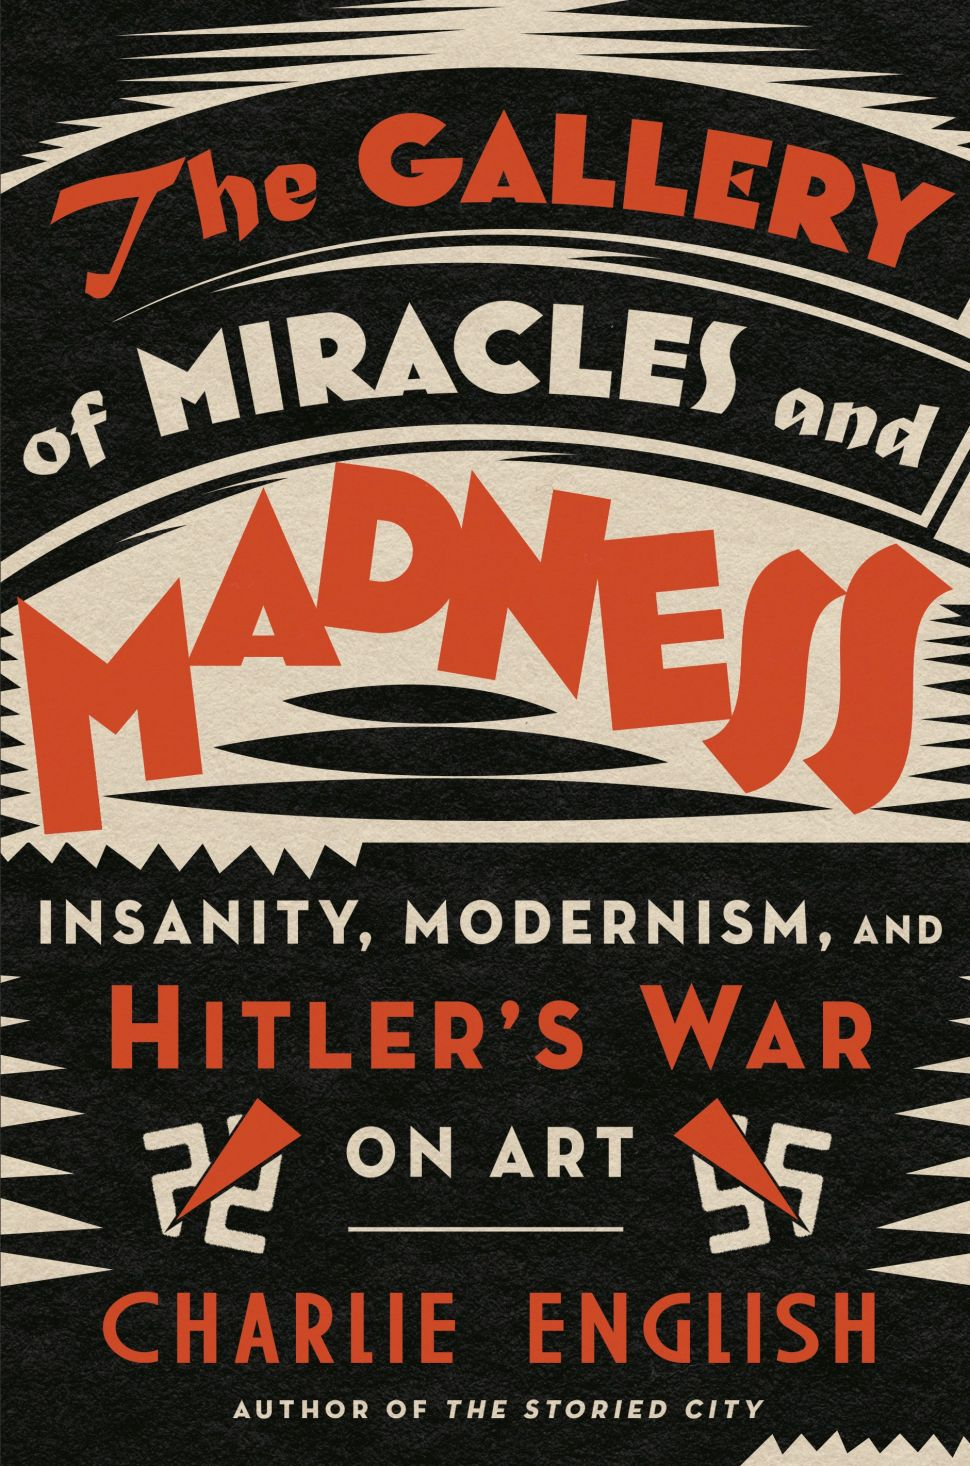 Charlie English's 'The Gallery of Miracles and Madness' Is a Necessary Read